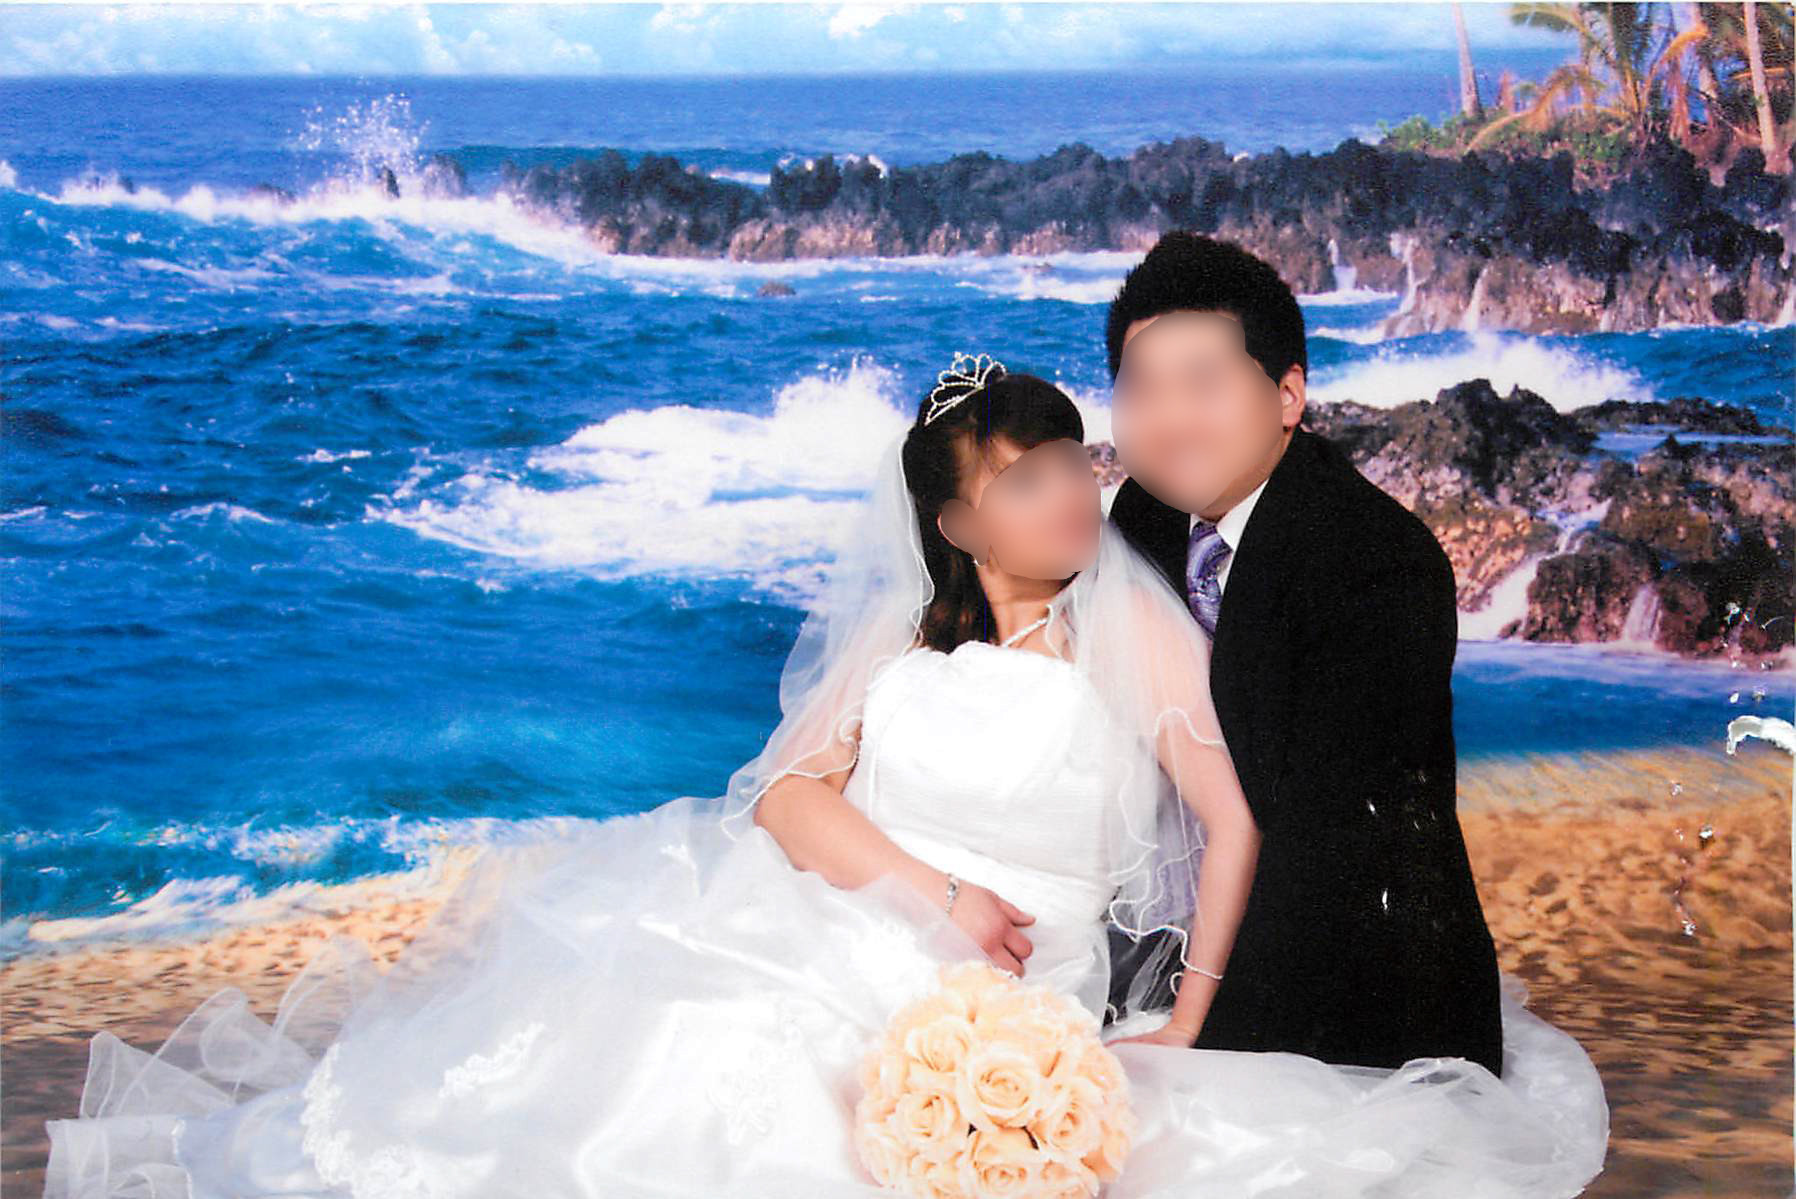 fake weddings and a honeymoon in vegas father and